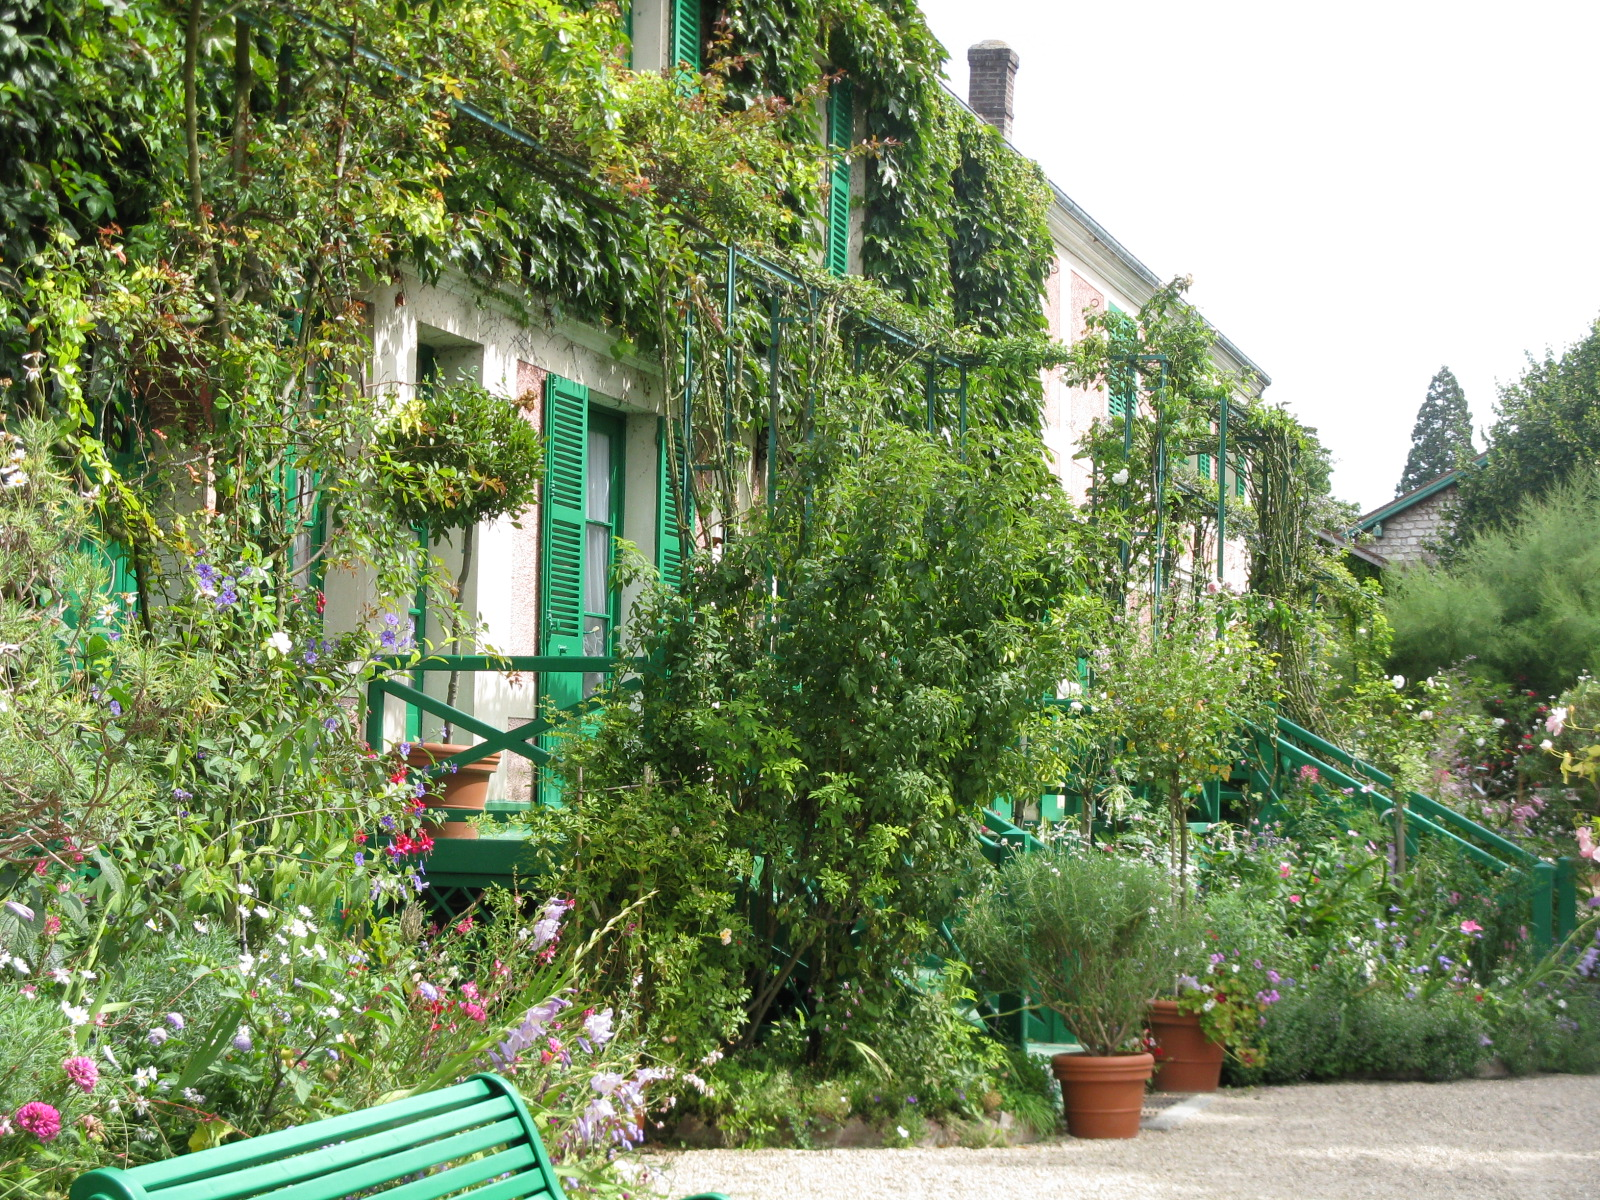 Phoebettmh travel france giverny tips and tricks for Monet home